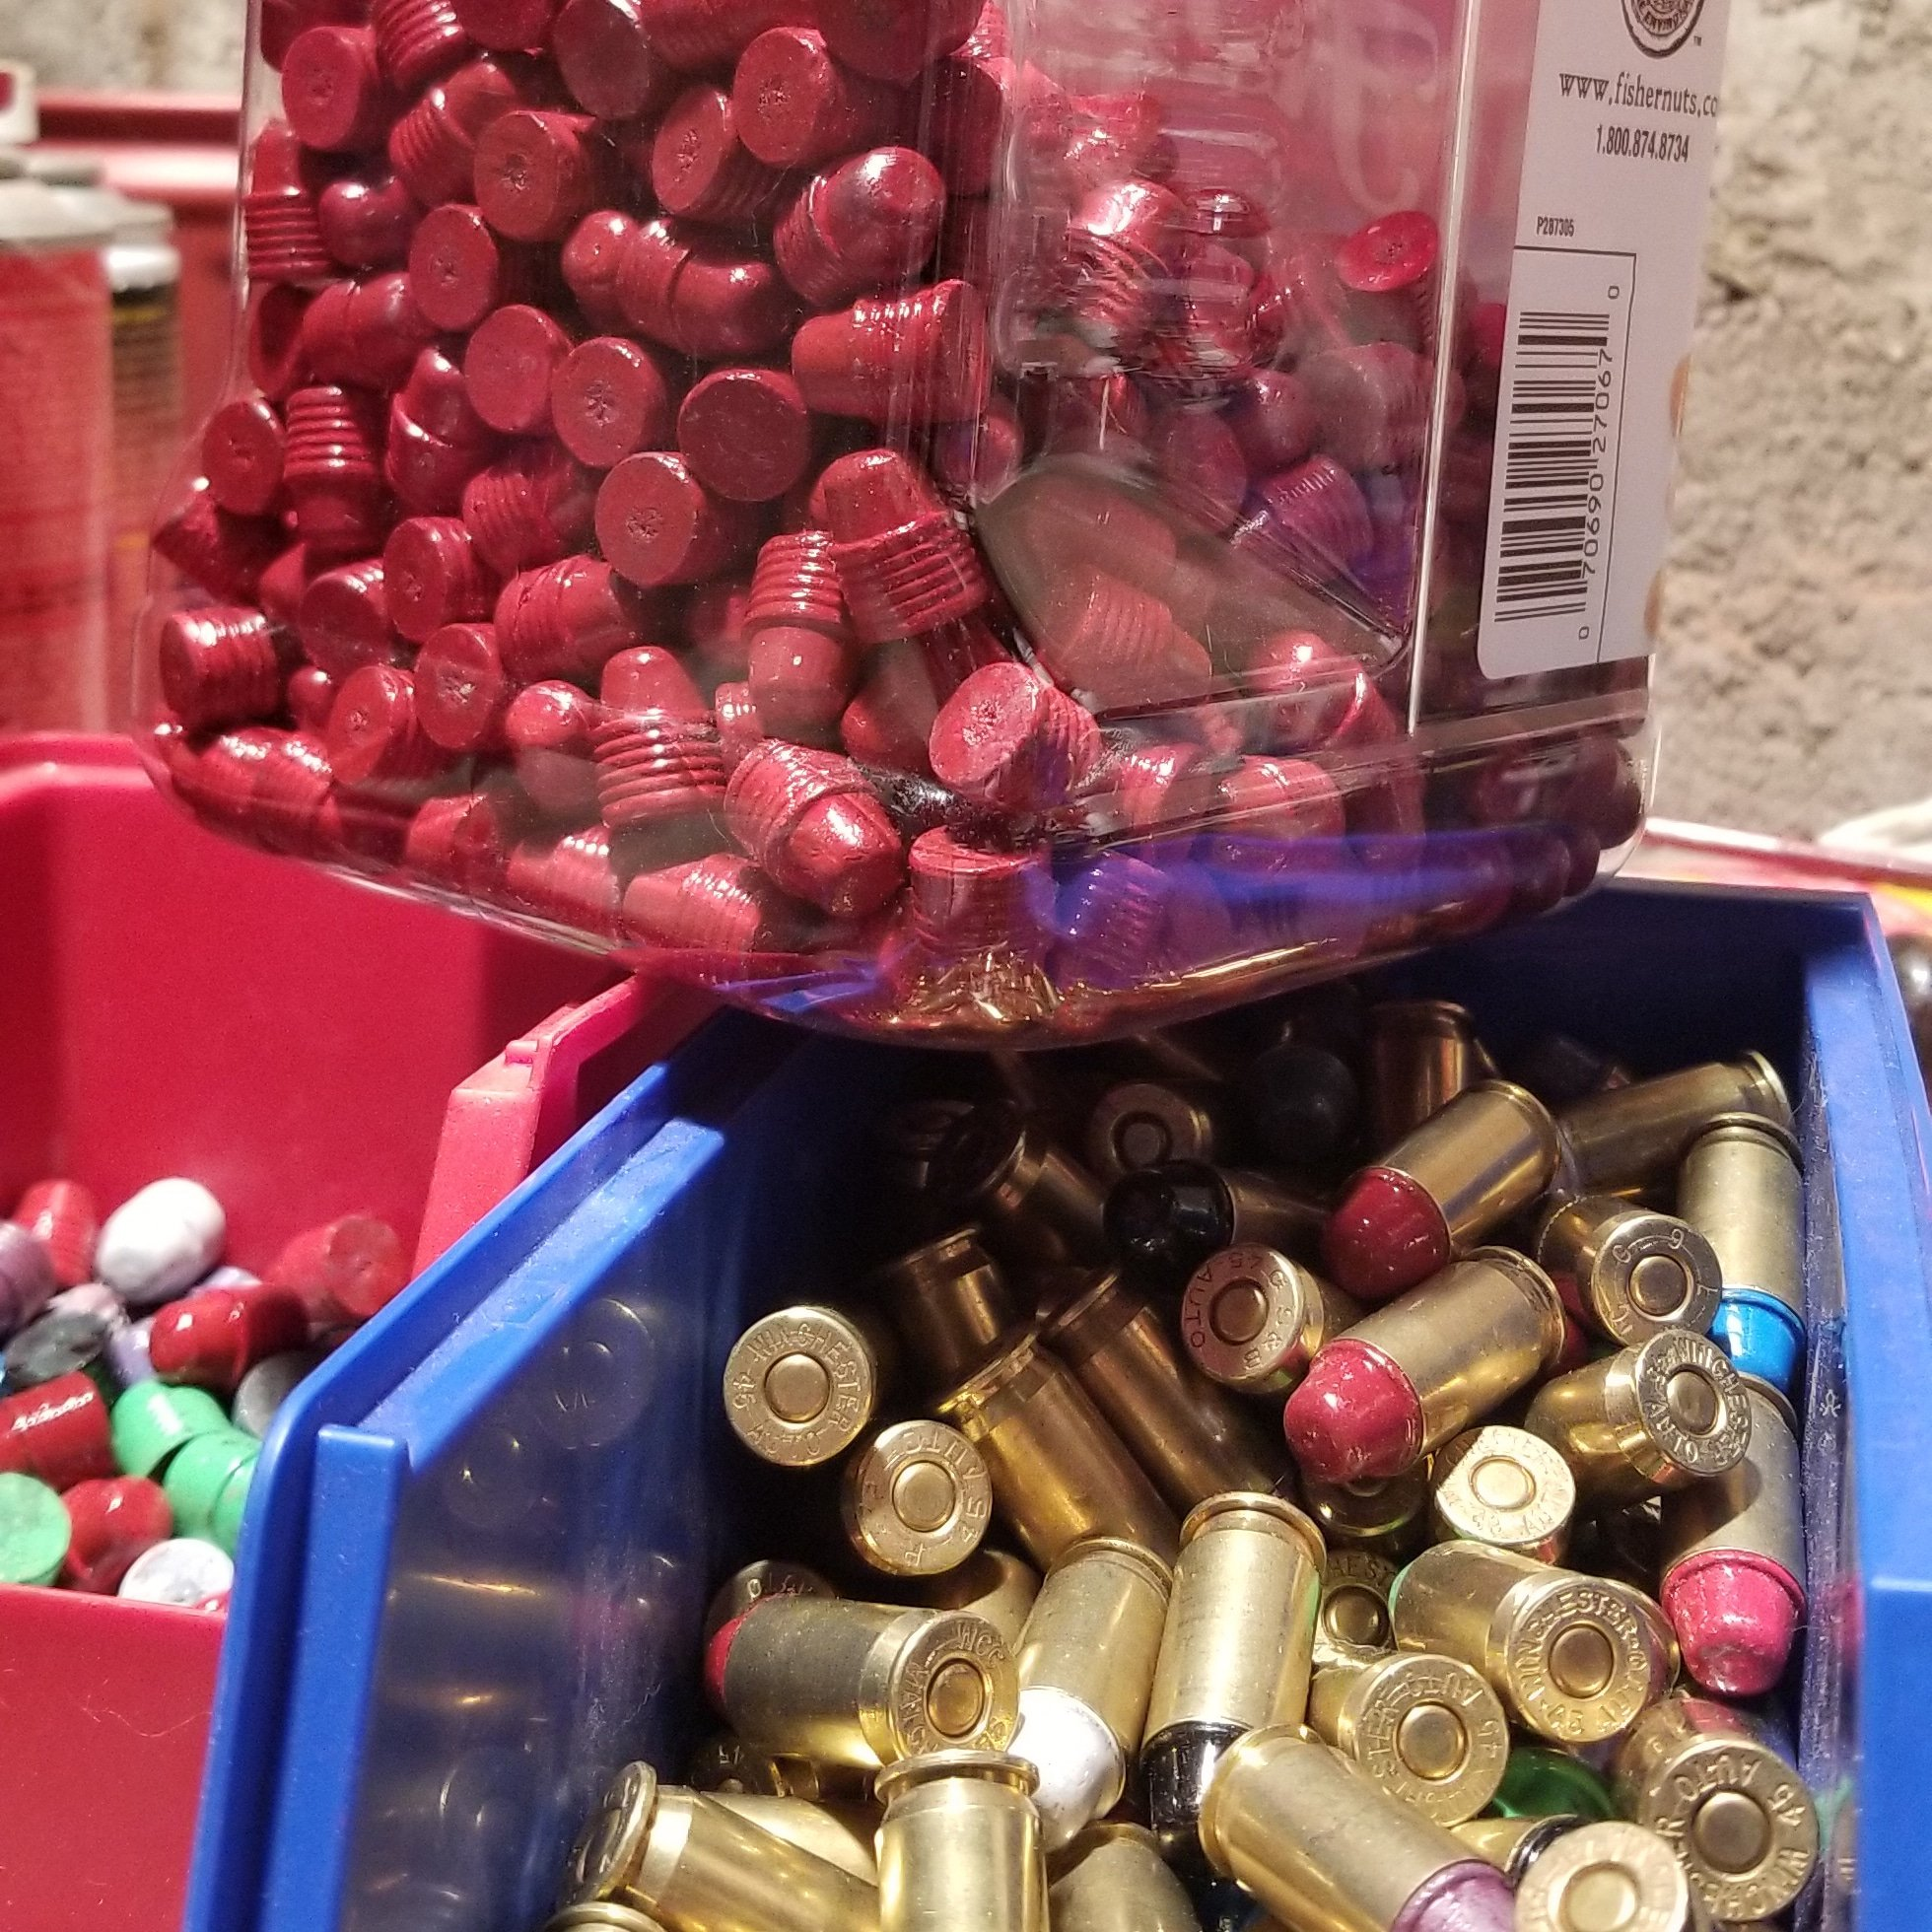 Rain Day Turned Reloading Day